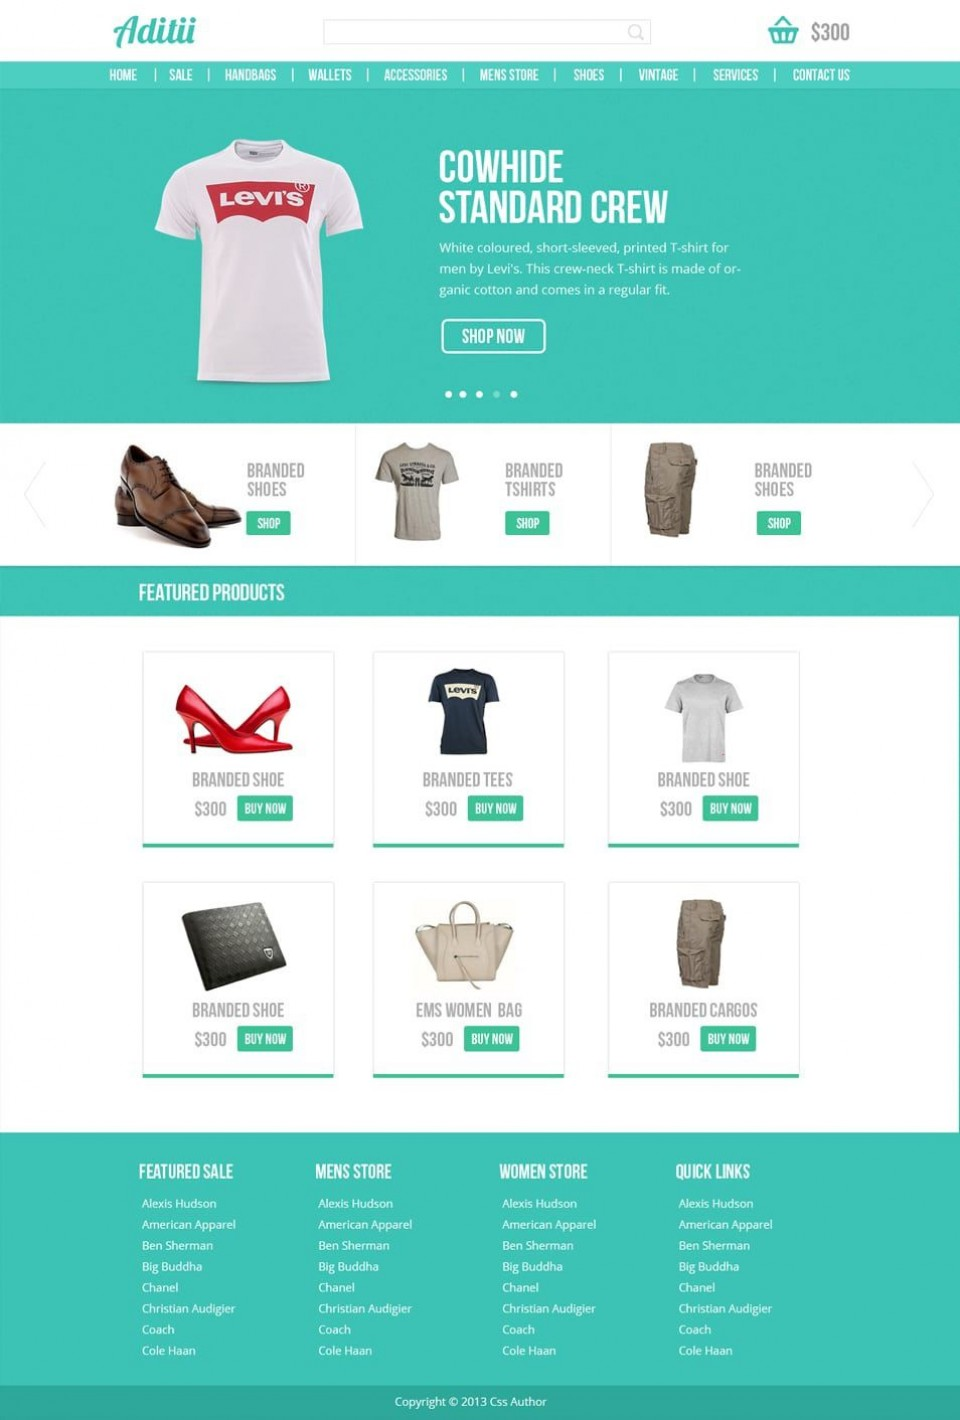 001 Top Ecommerce Website Template Html Free Download Highest Quality  Bootstrap 4 Responsive With Cs Jquery960